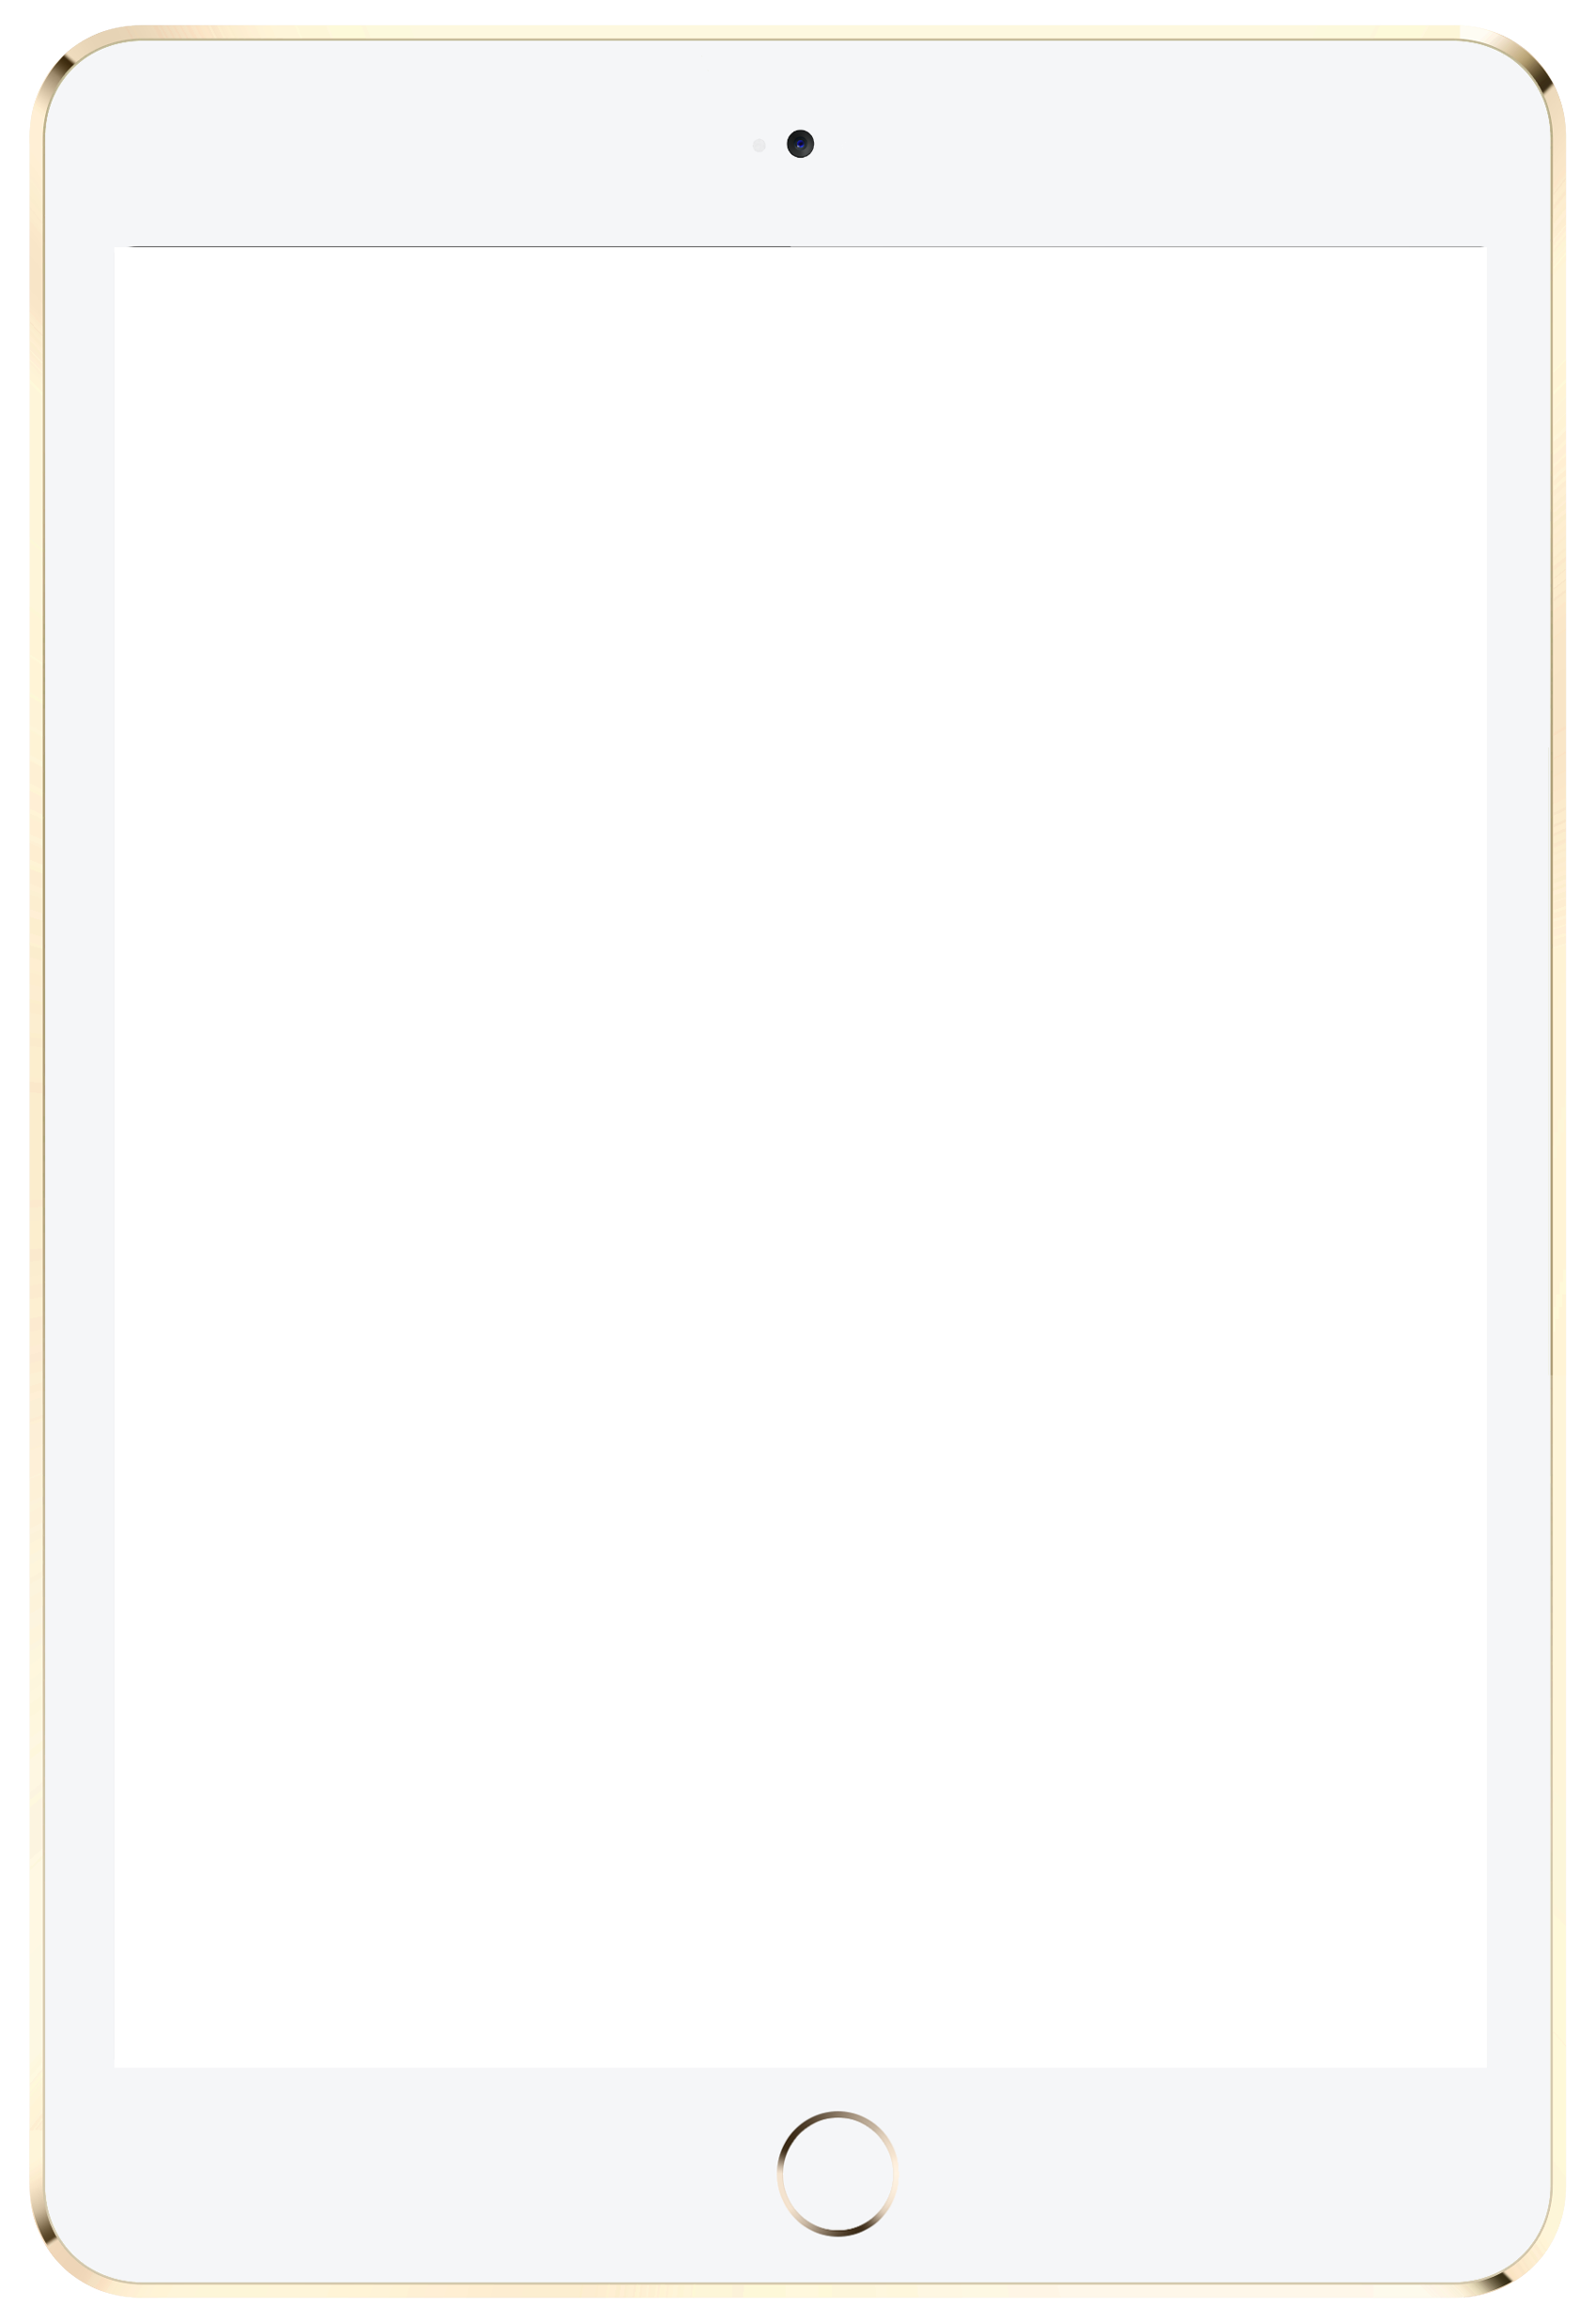 White ipad air png. Tablet image purepng free